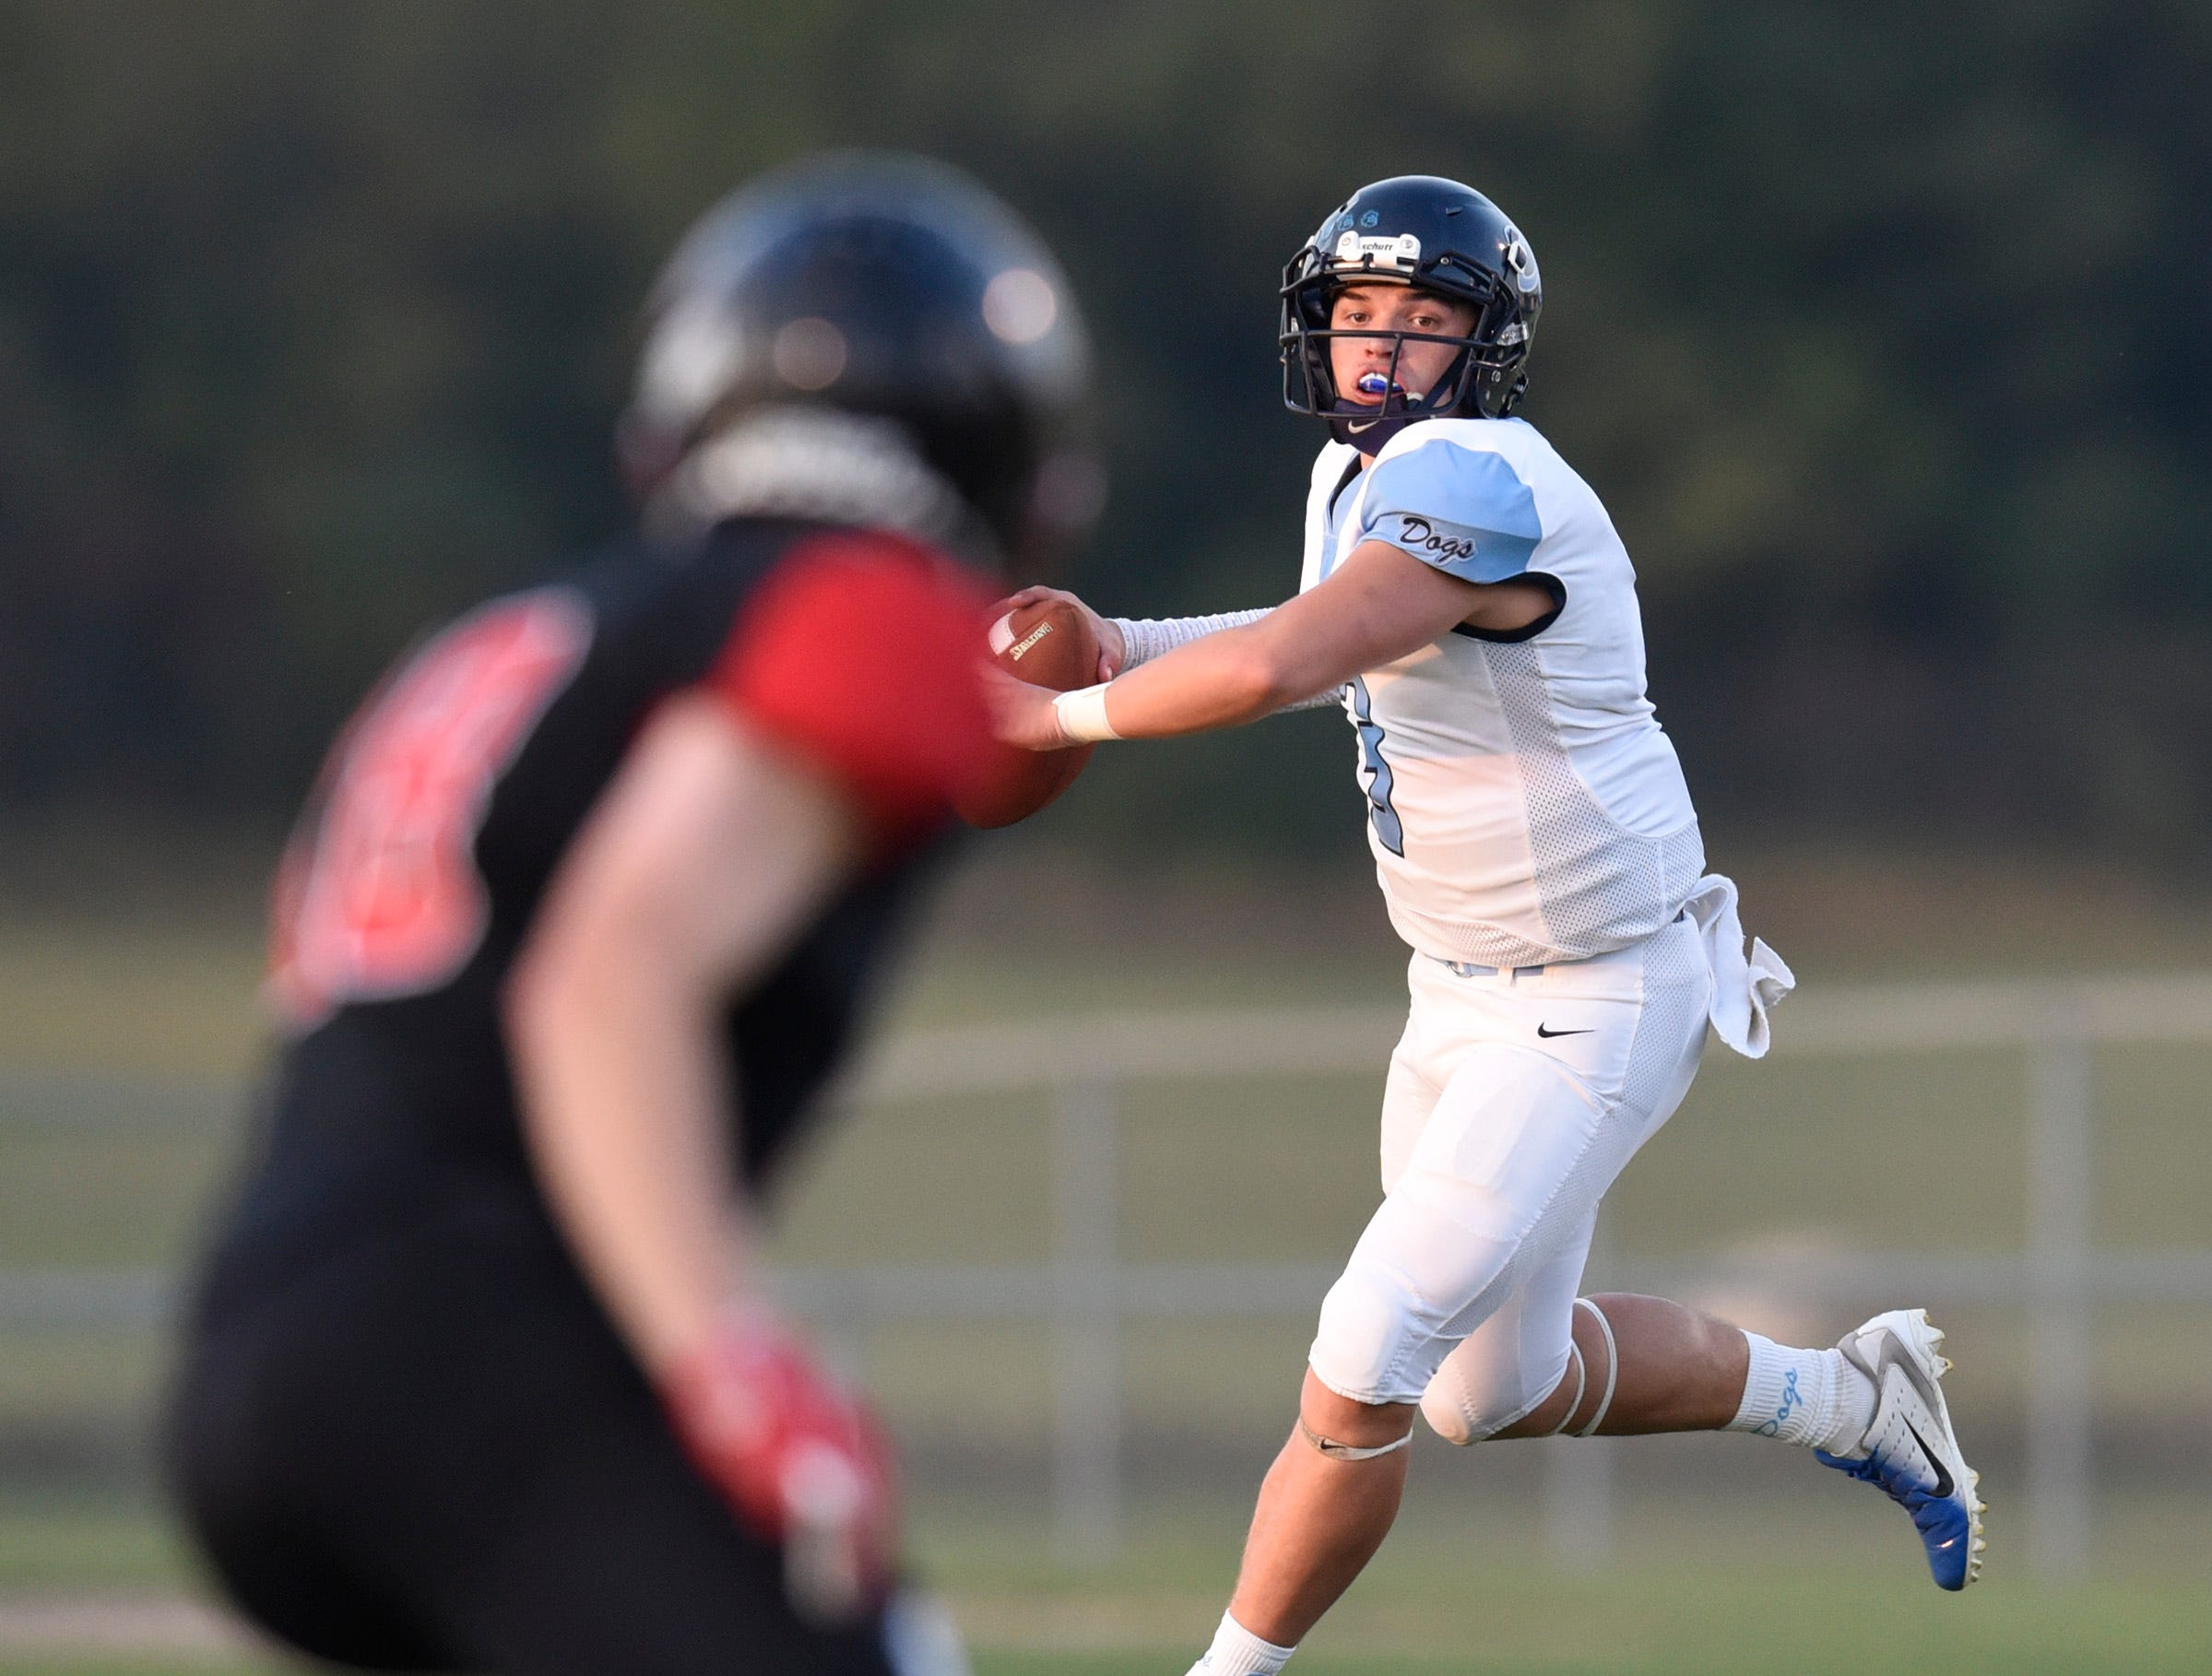 Becker quarterback Josh Fobbe makes a pass against ROCORI during the first half Friday, Sept. 14, in Cold Spring.